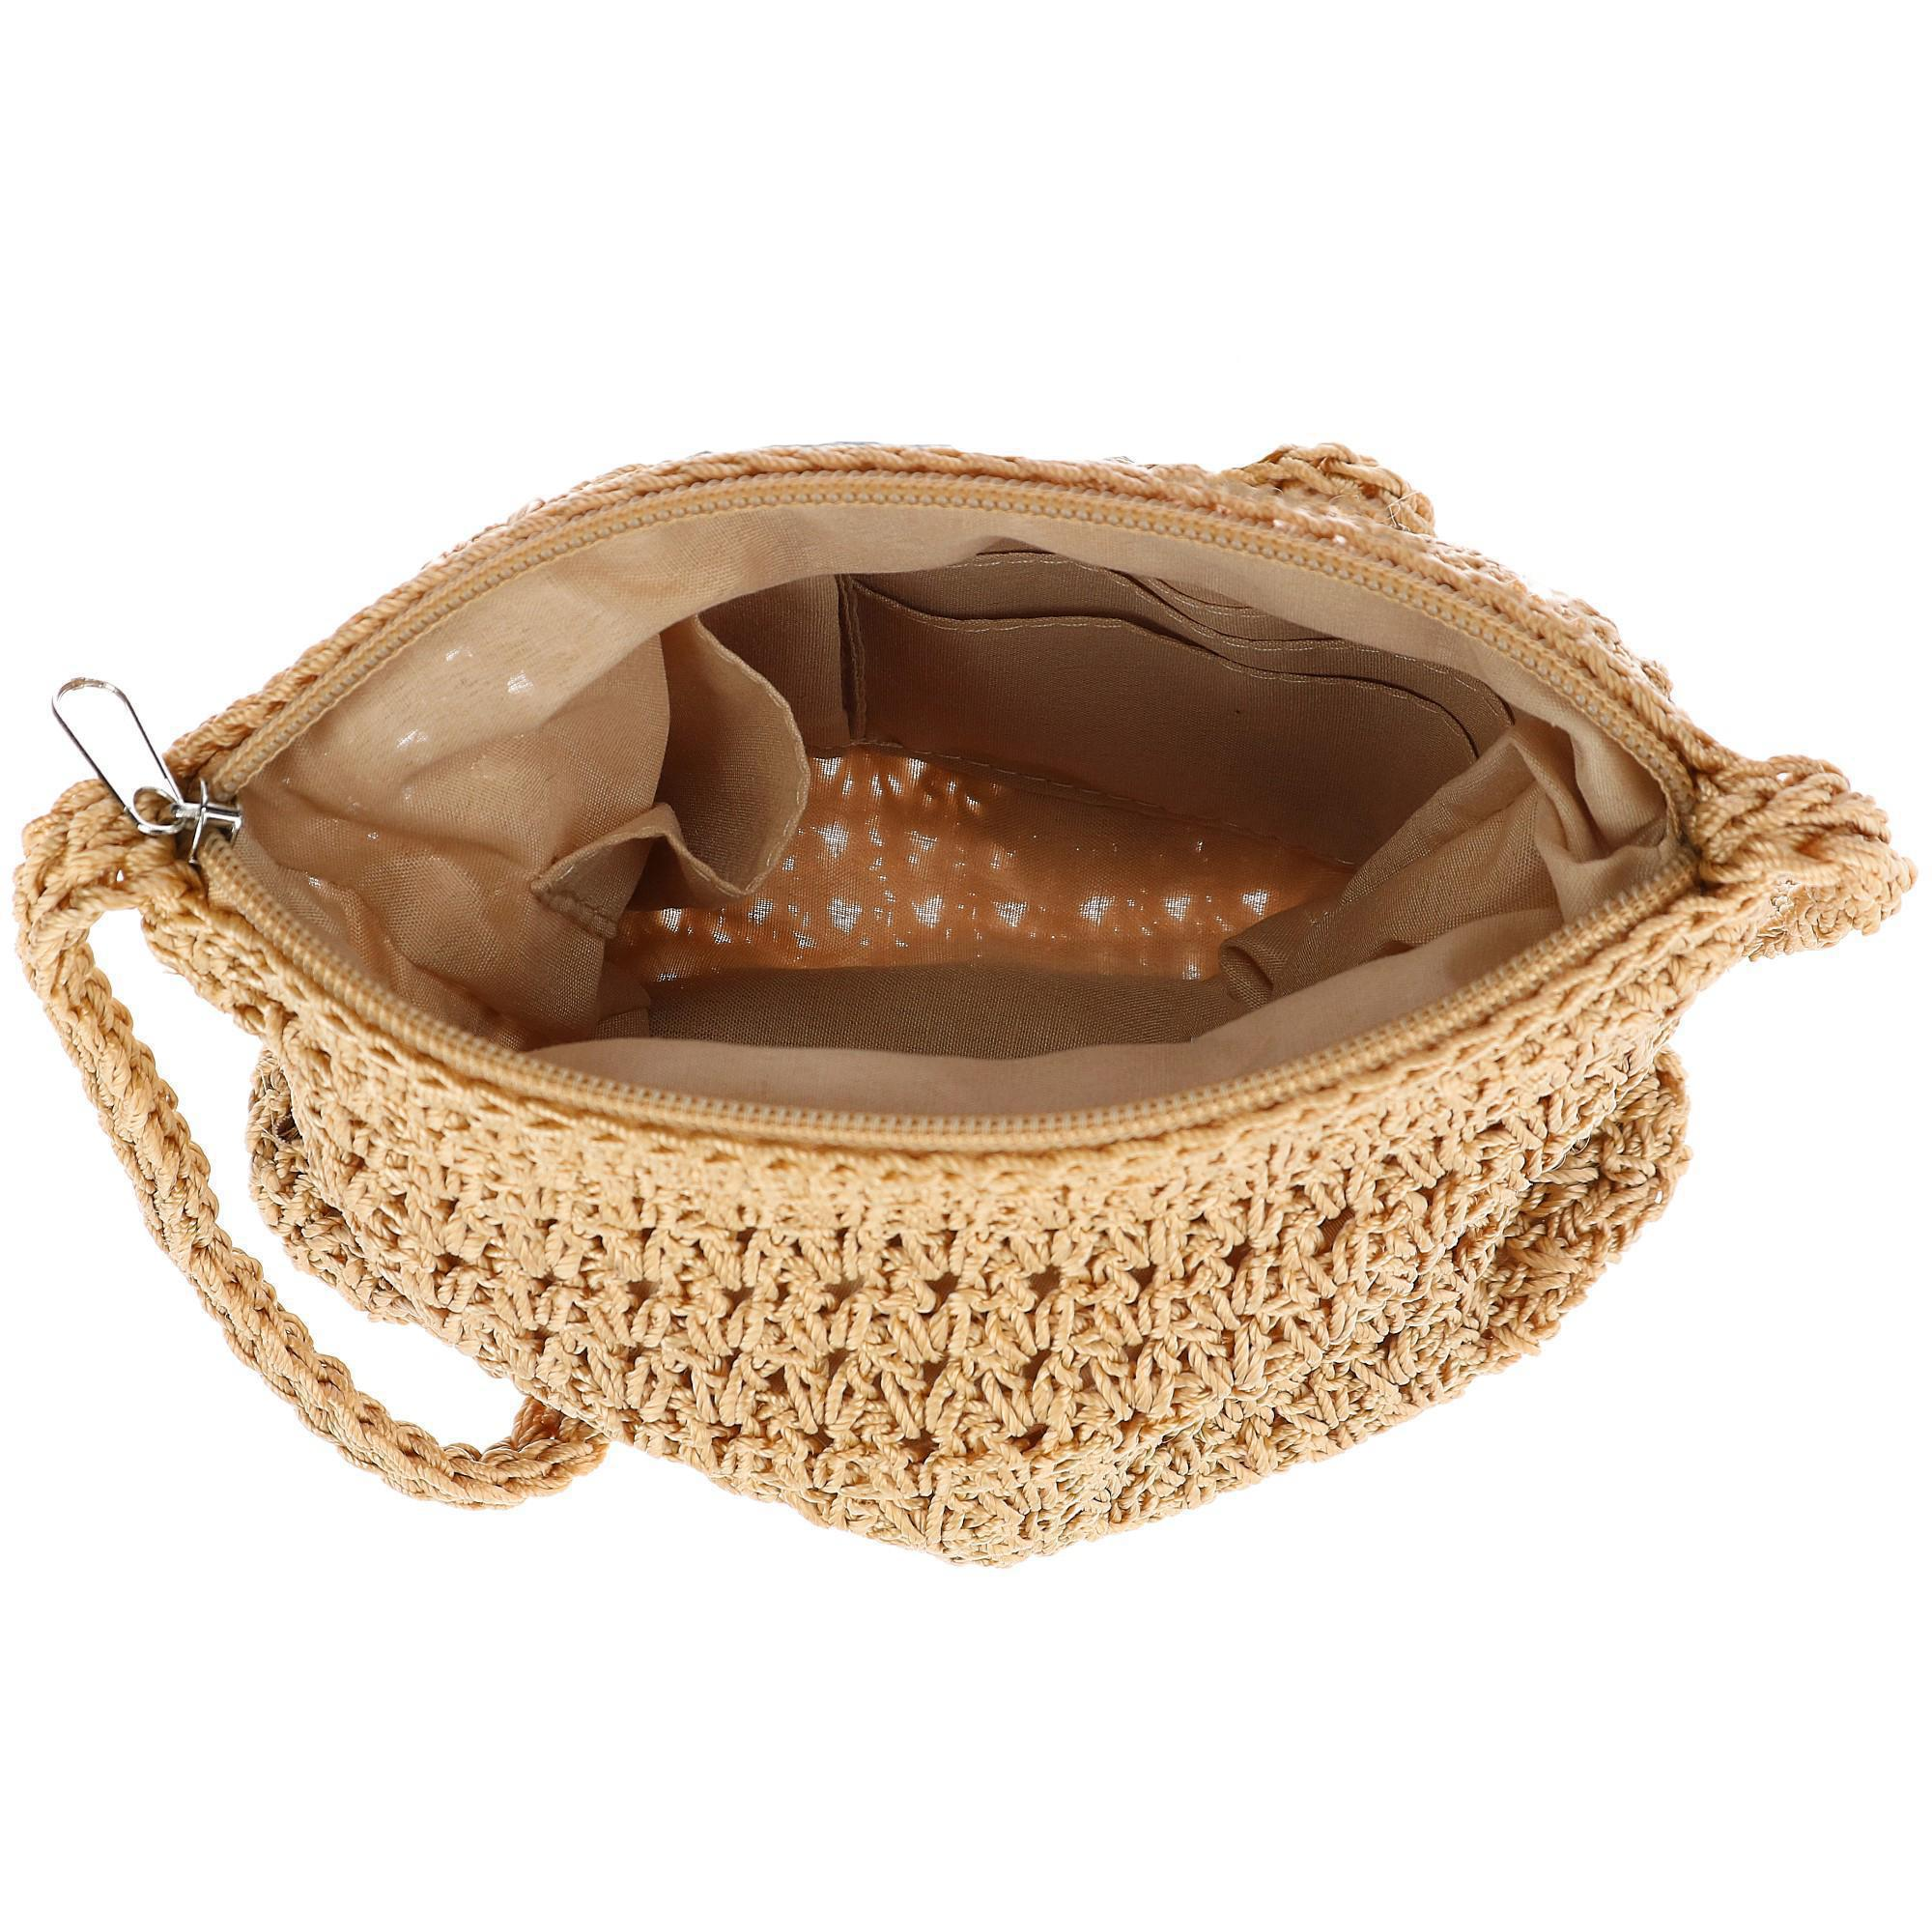 New-CTM-Women-039-s-Crochet-Crossbody-Handbag thumbnail 5